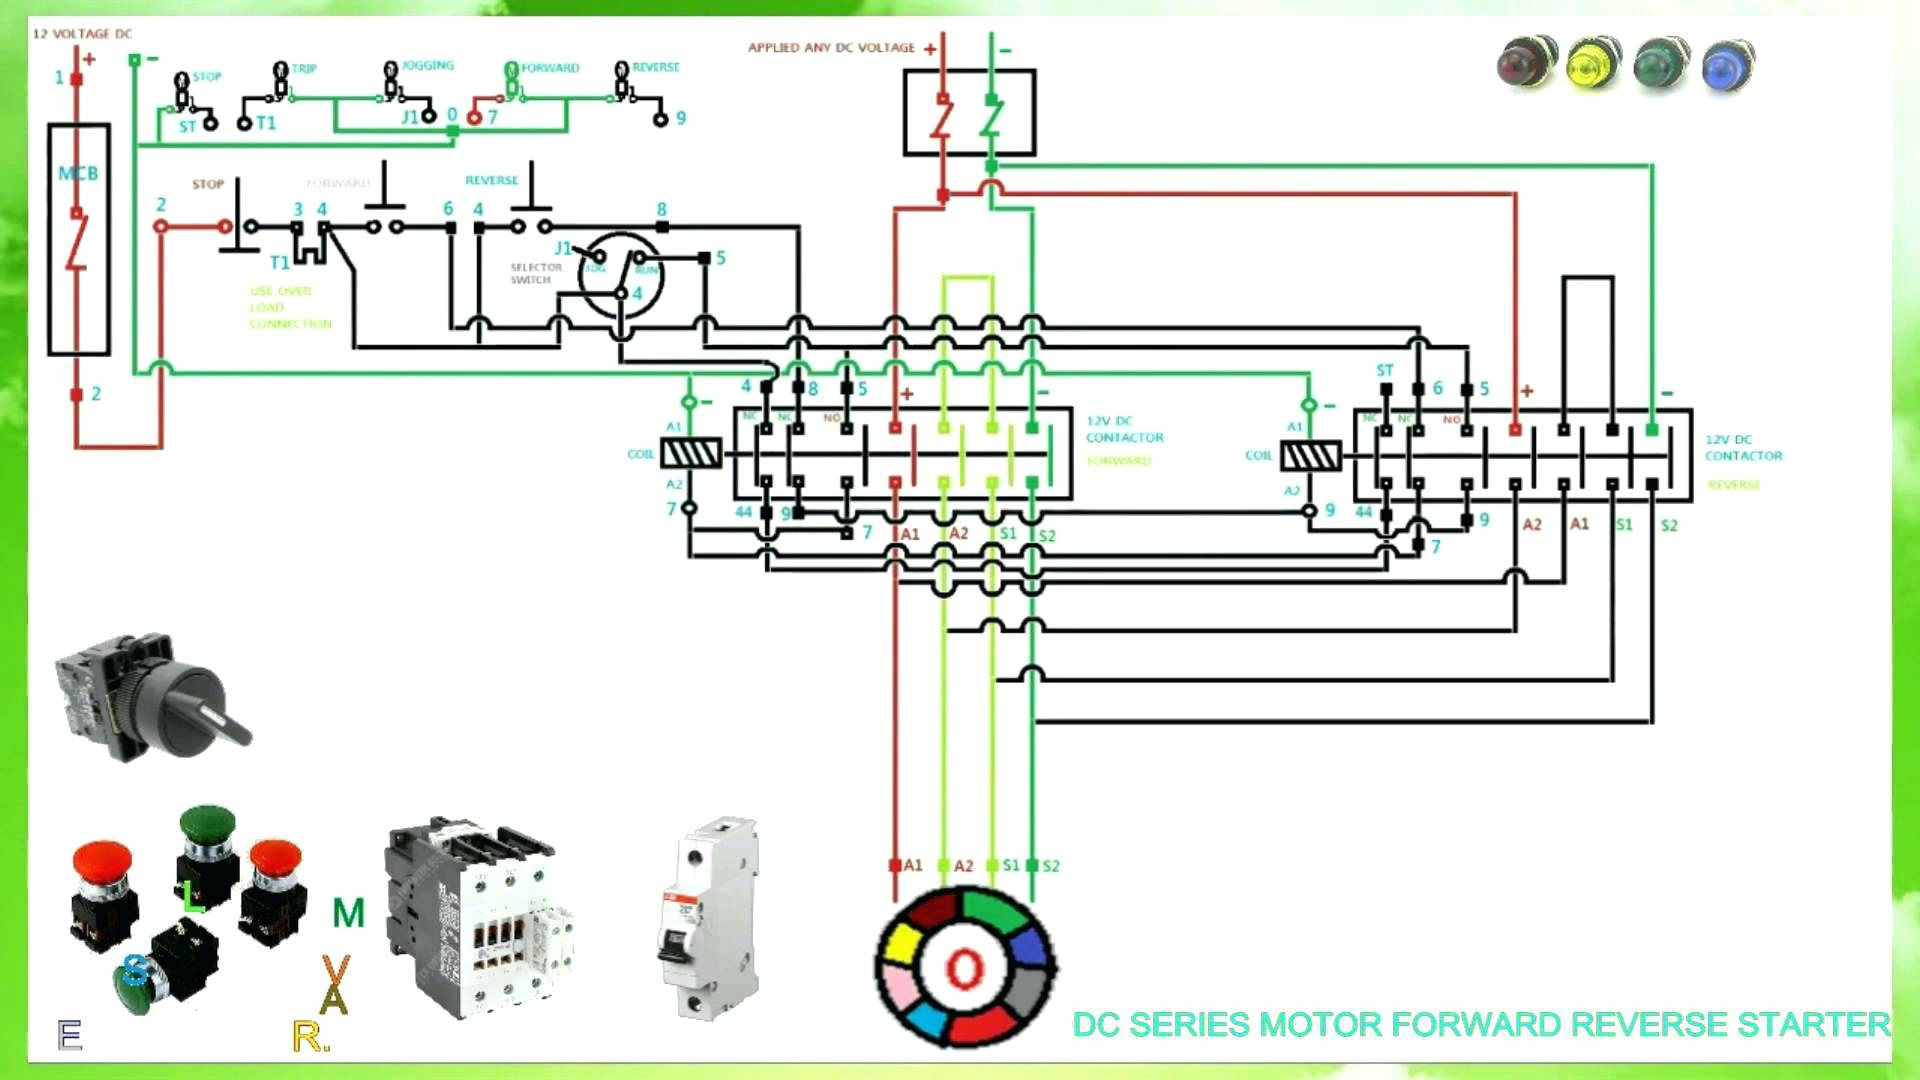 Wiring diagram for forward reverse motor free download wiring free download wiring diagram single phase reversing motor wiring diagram dol motor control wiring of asfbconference2016 Gallery